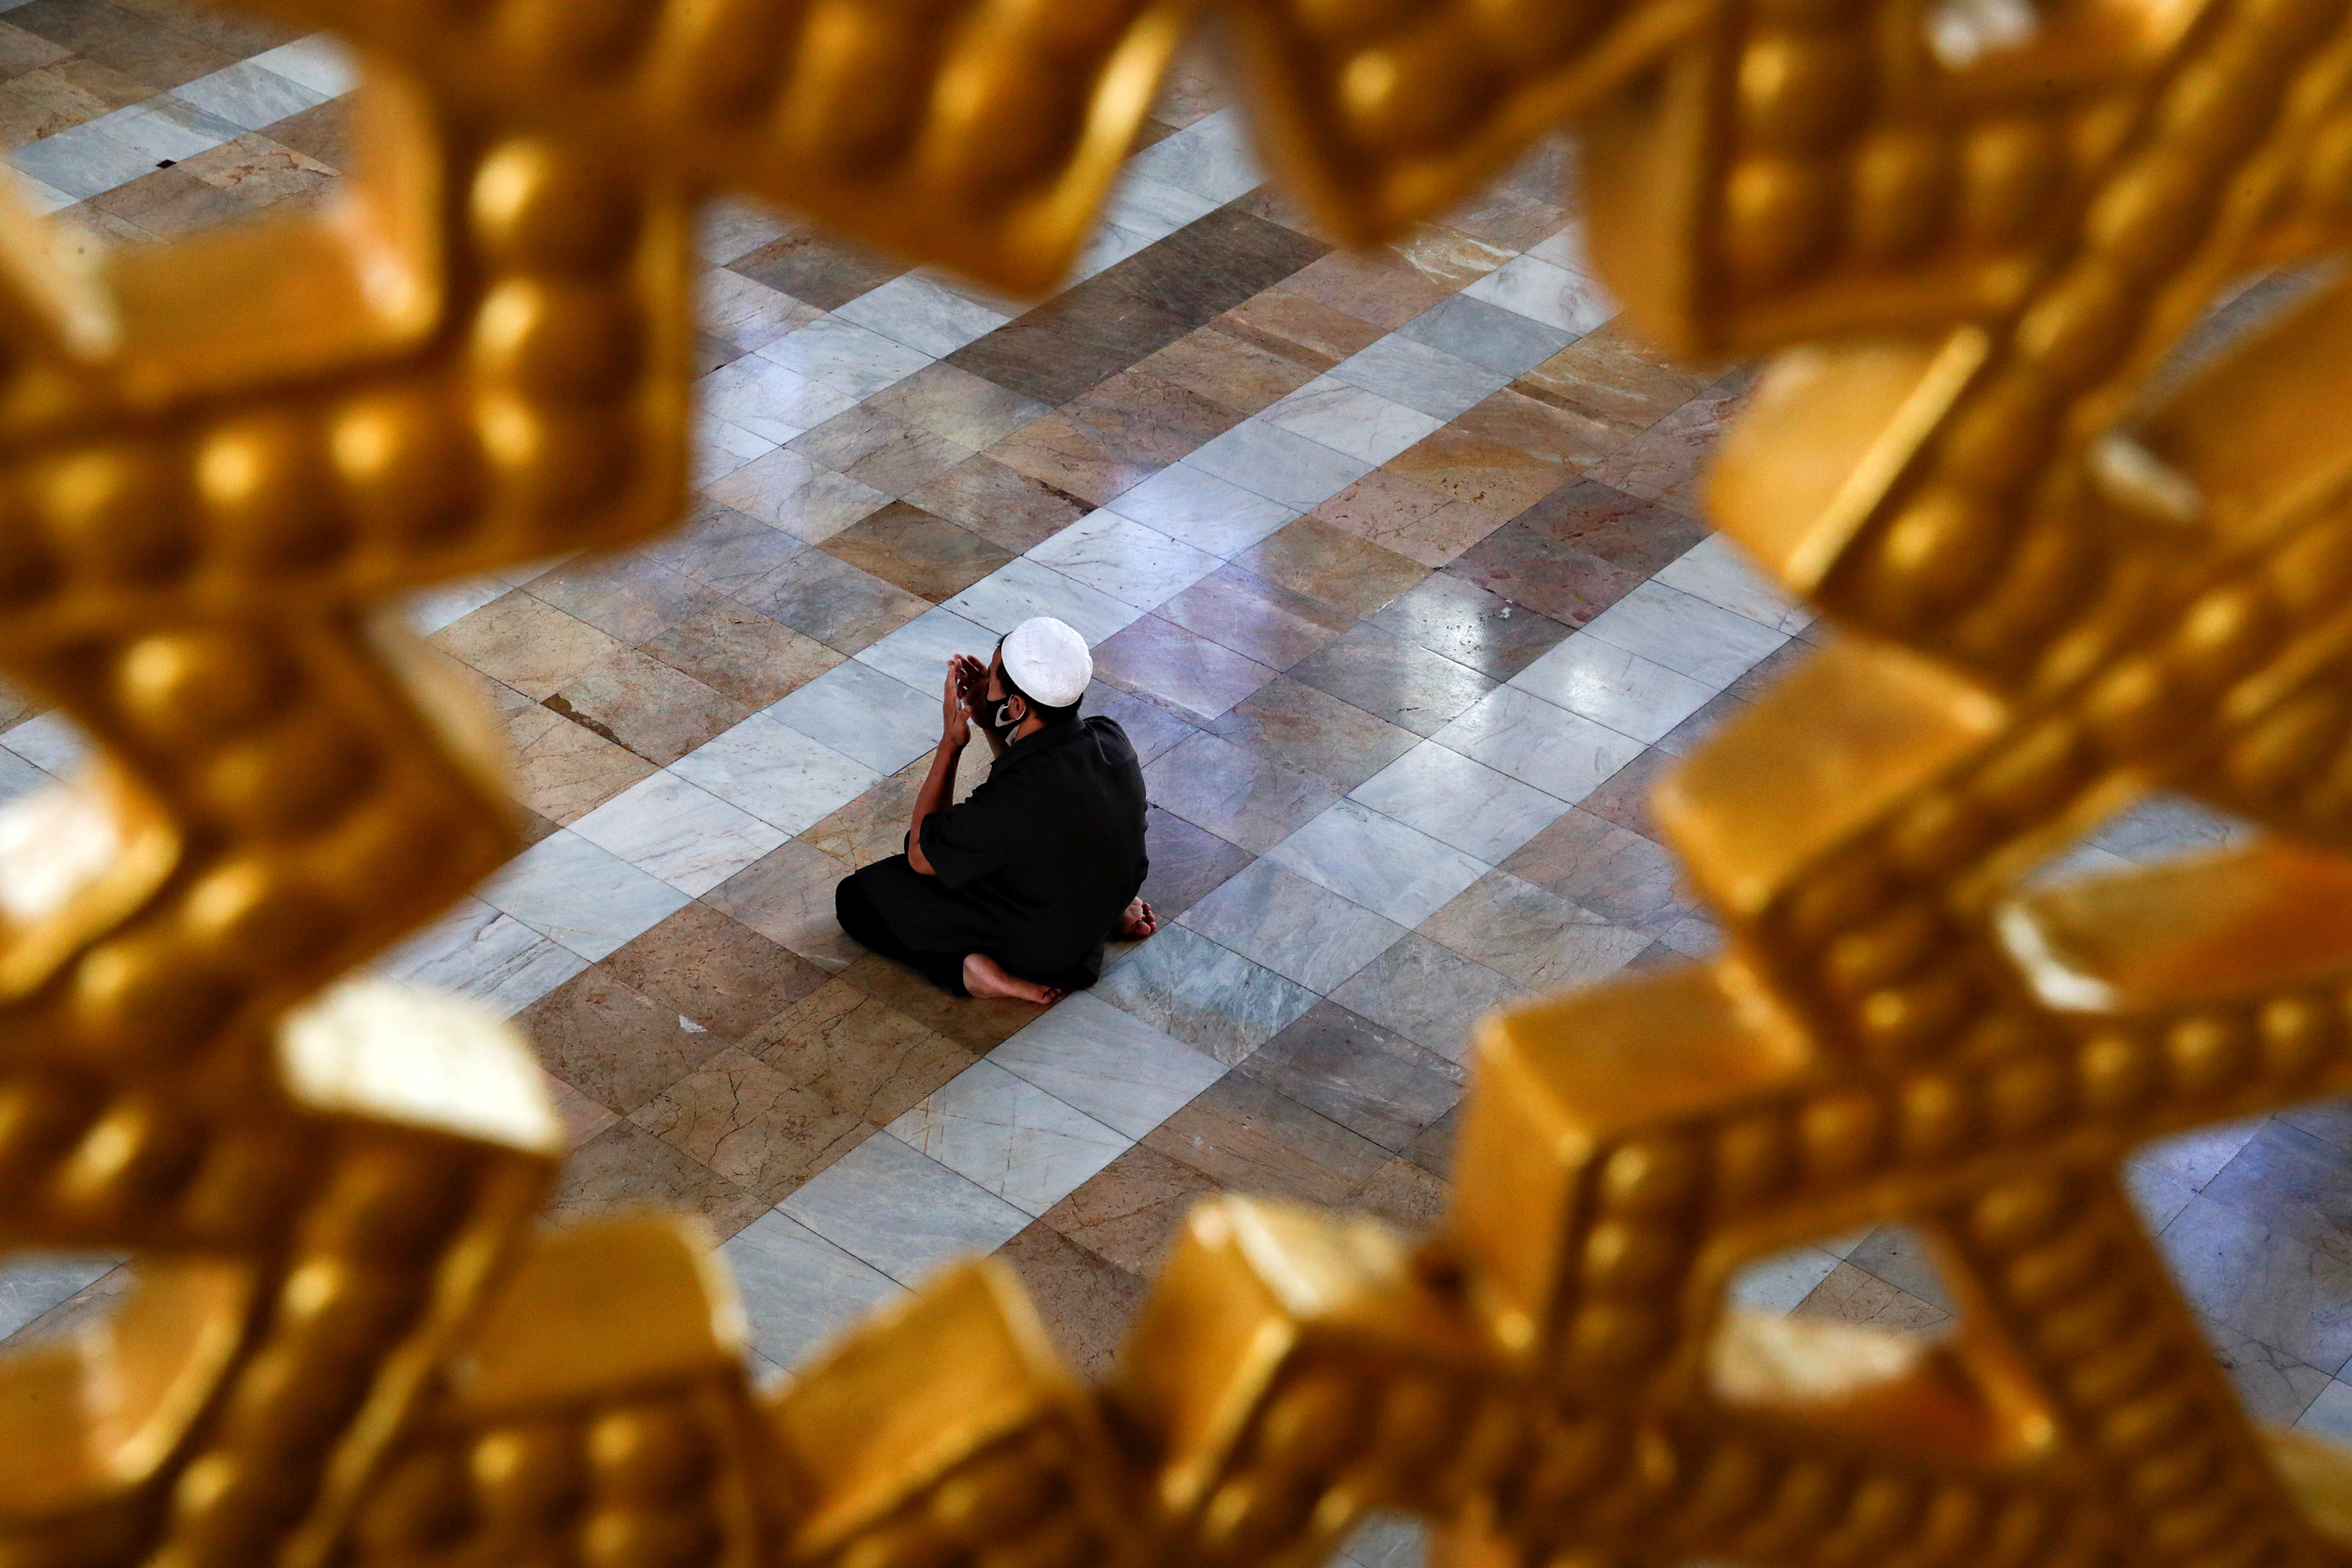 A Muslim man wearing a protective face mask prays at a mosque on the first day of the holy fasting month of Ramadan, amid the coronavirus disease (COVID-19) outbreak, in Bangkok, Thailand, on Friday, April 24, 2020. Photo: Reuters